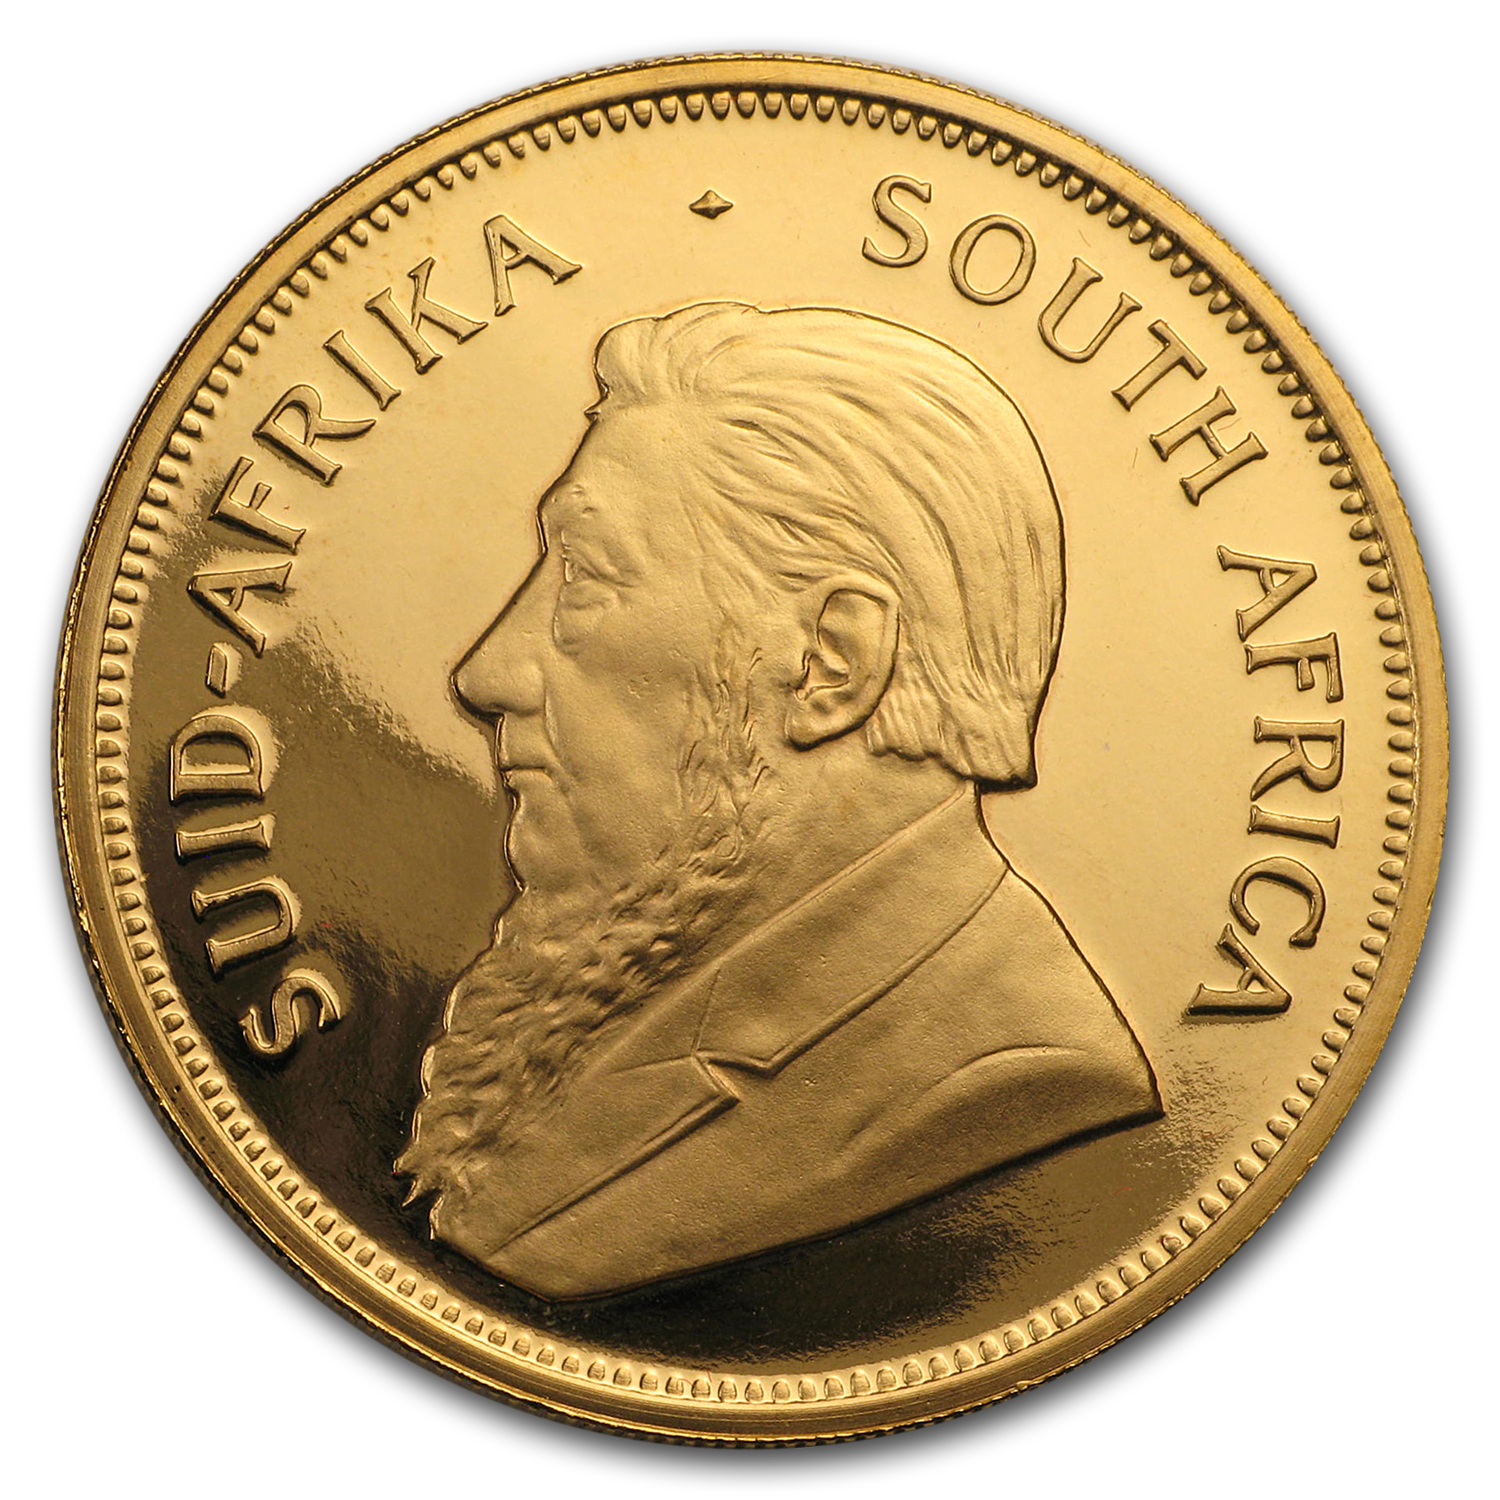 1987 1 oz Gold South African Krugerrand (Proof)